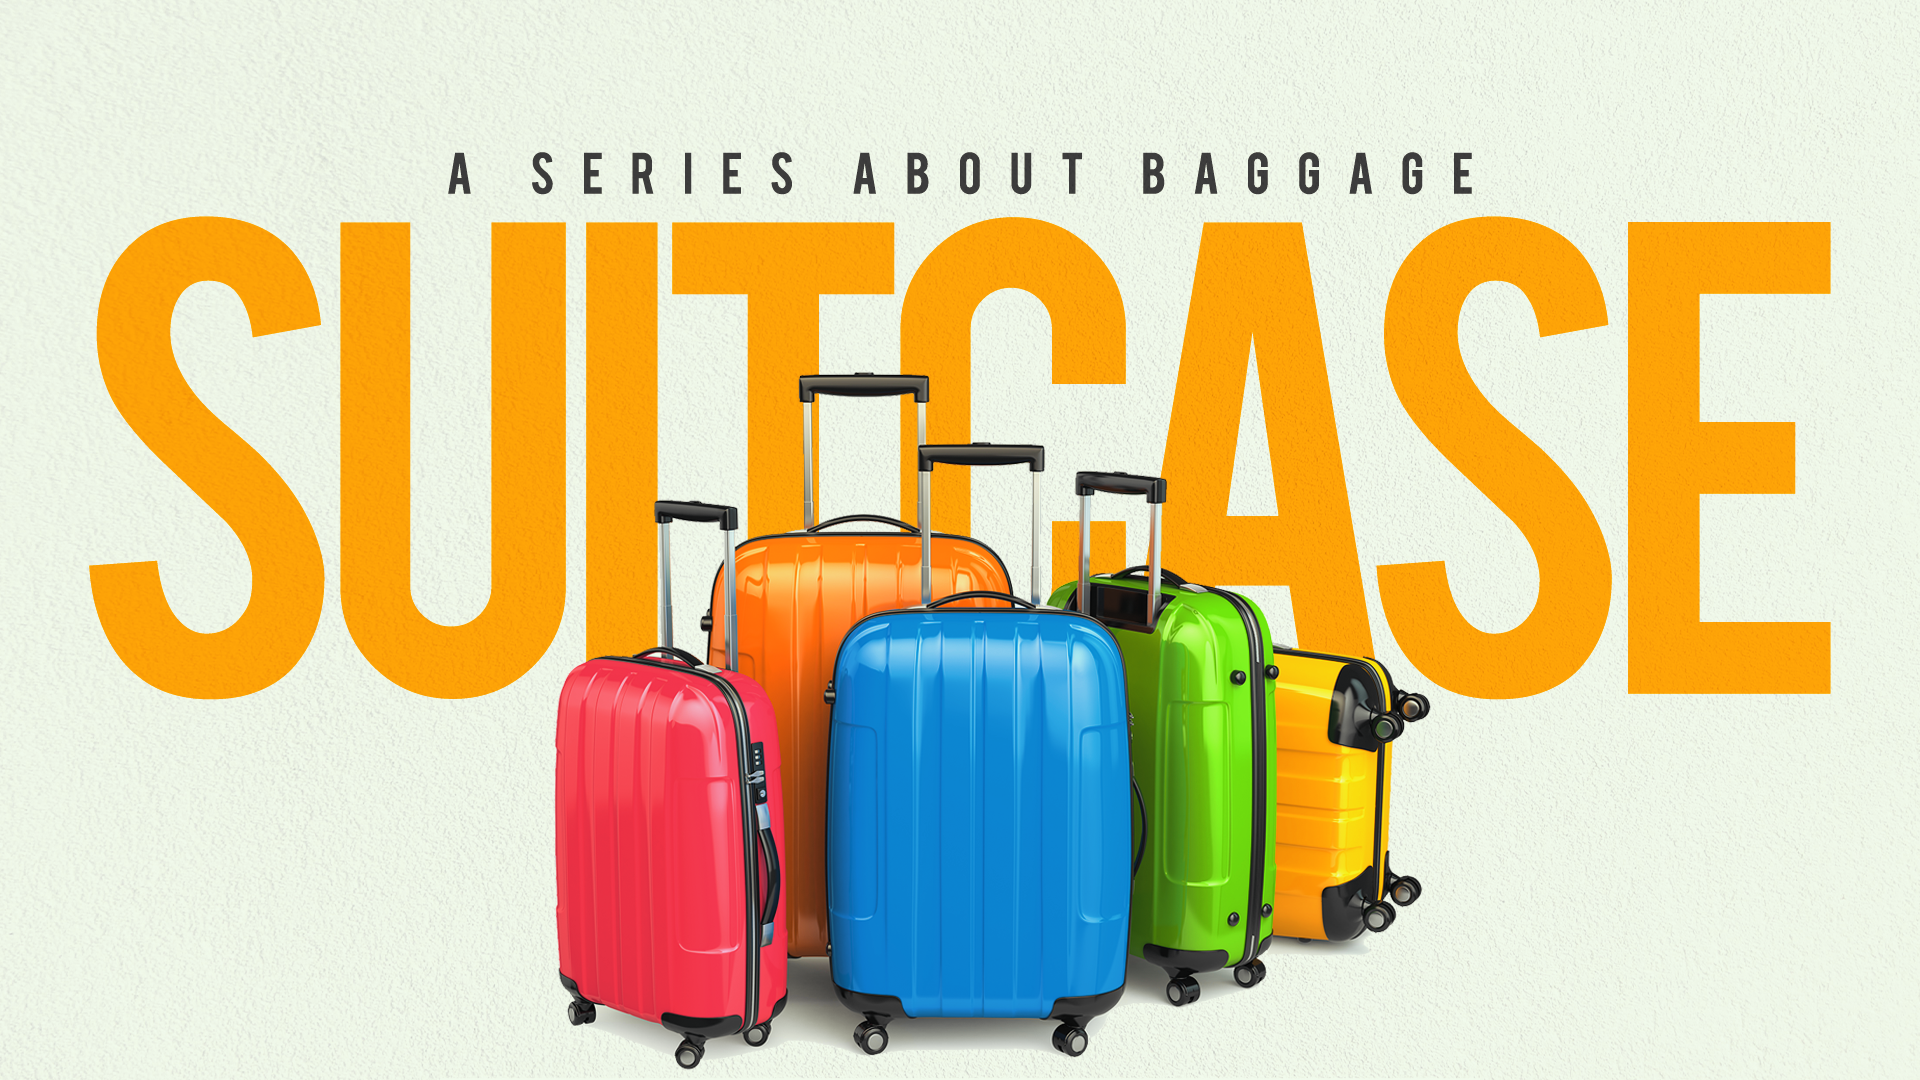 Suitcase: The Power of Love